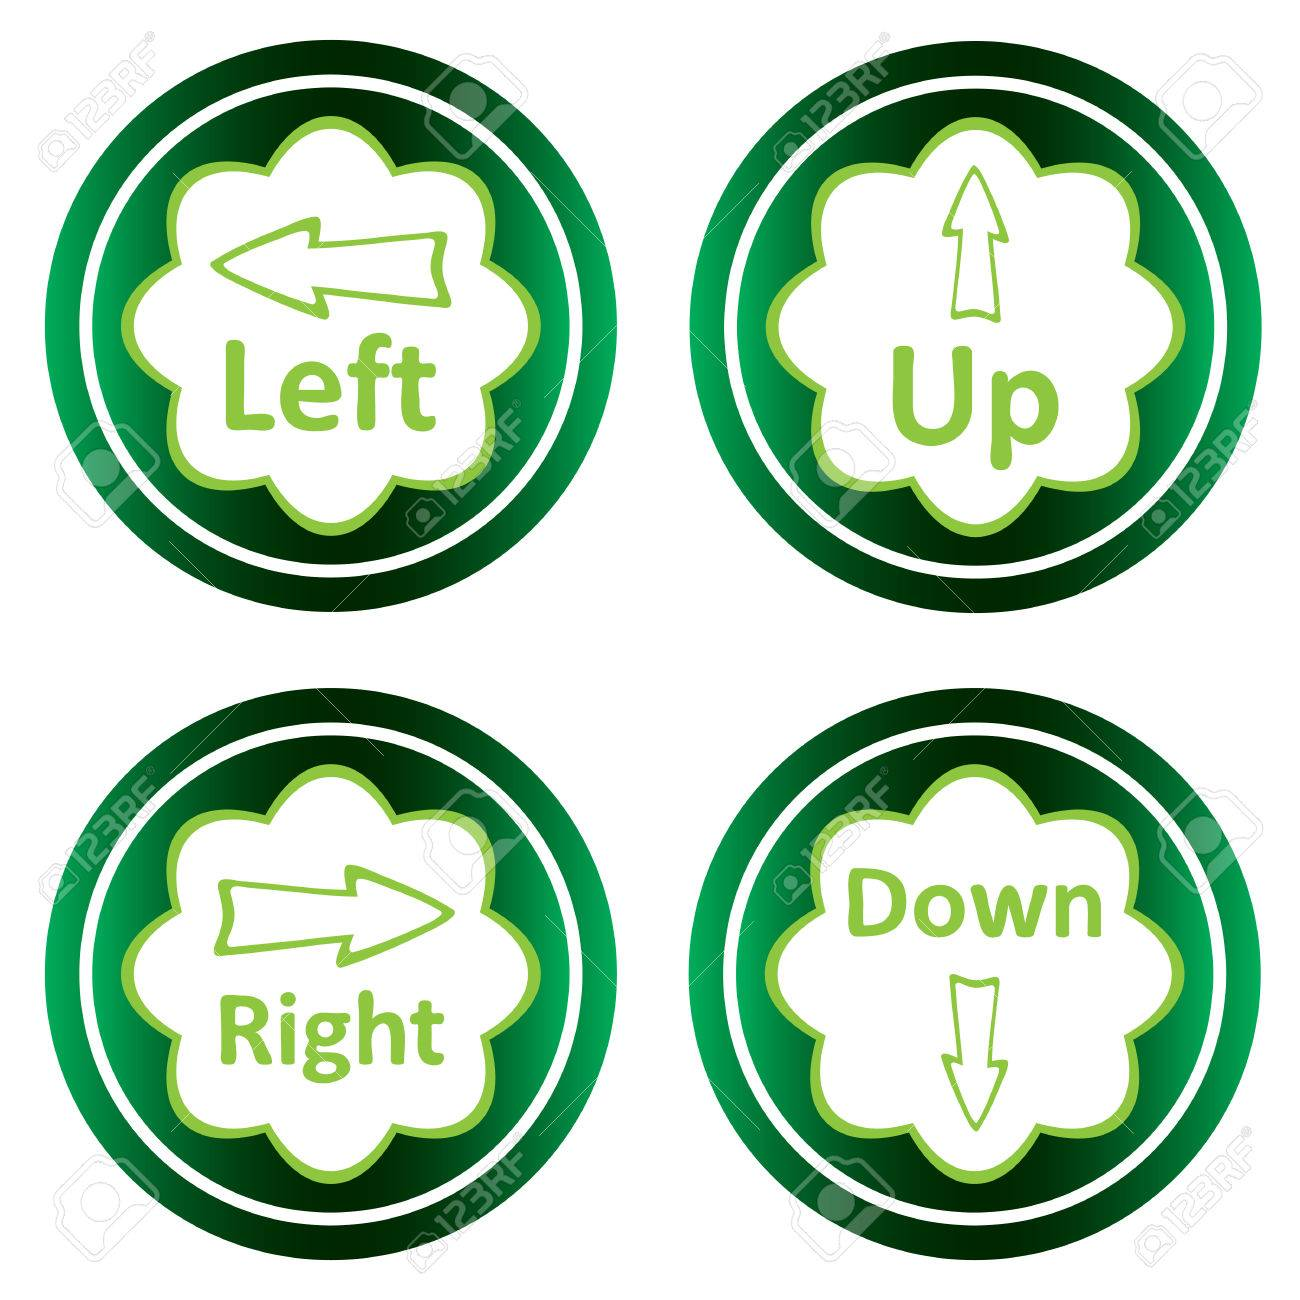 Green icons clipart with arrows up, down, left, right.